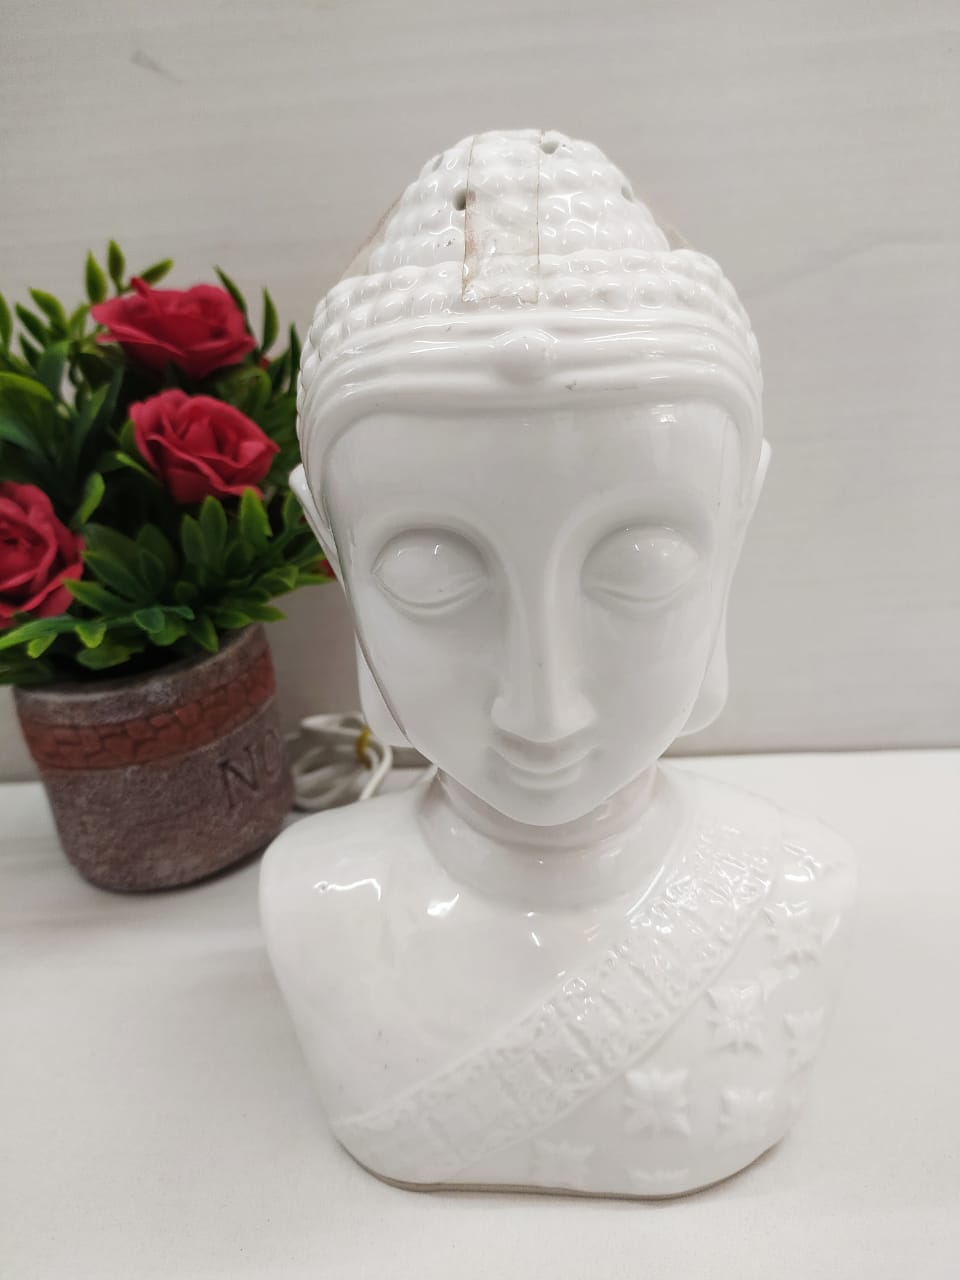 Budha face head showpiece with oil diffuser and lighting (2 in 1) Plug-in model DE155